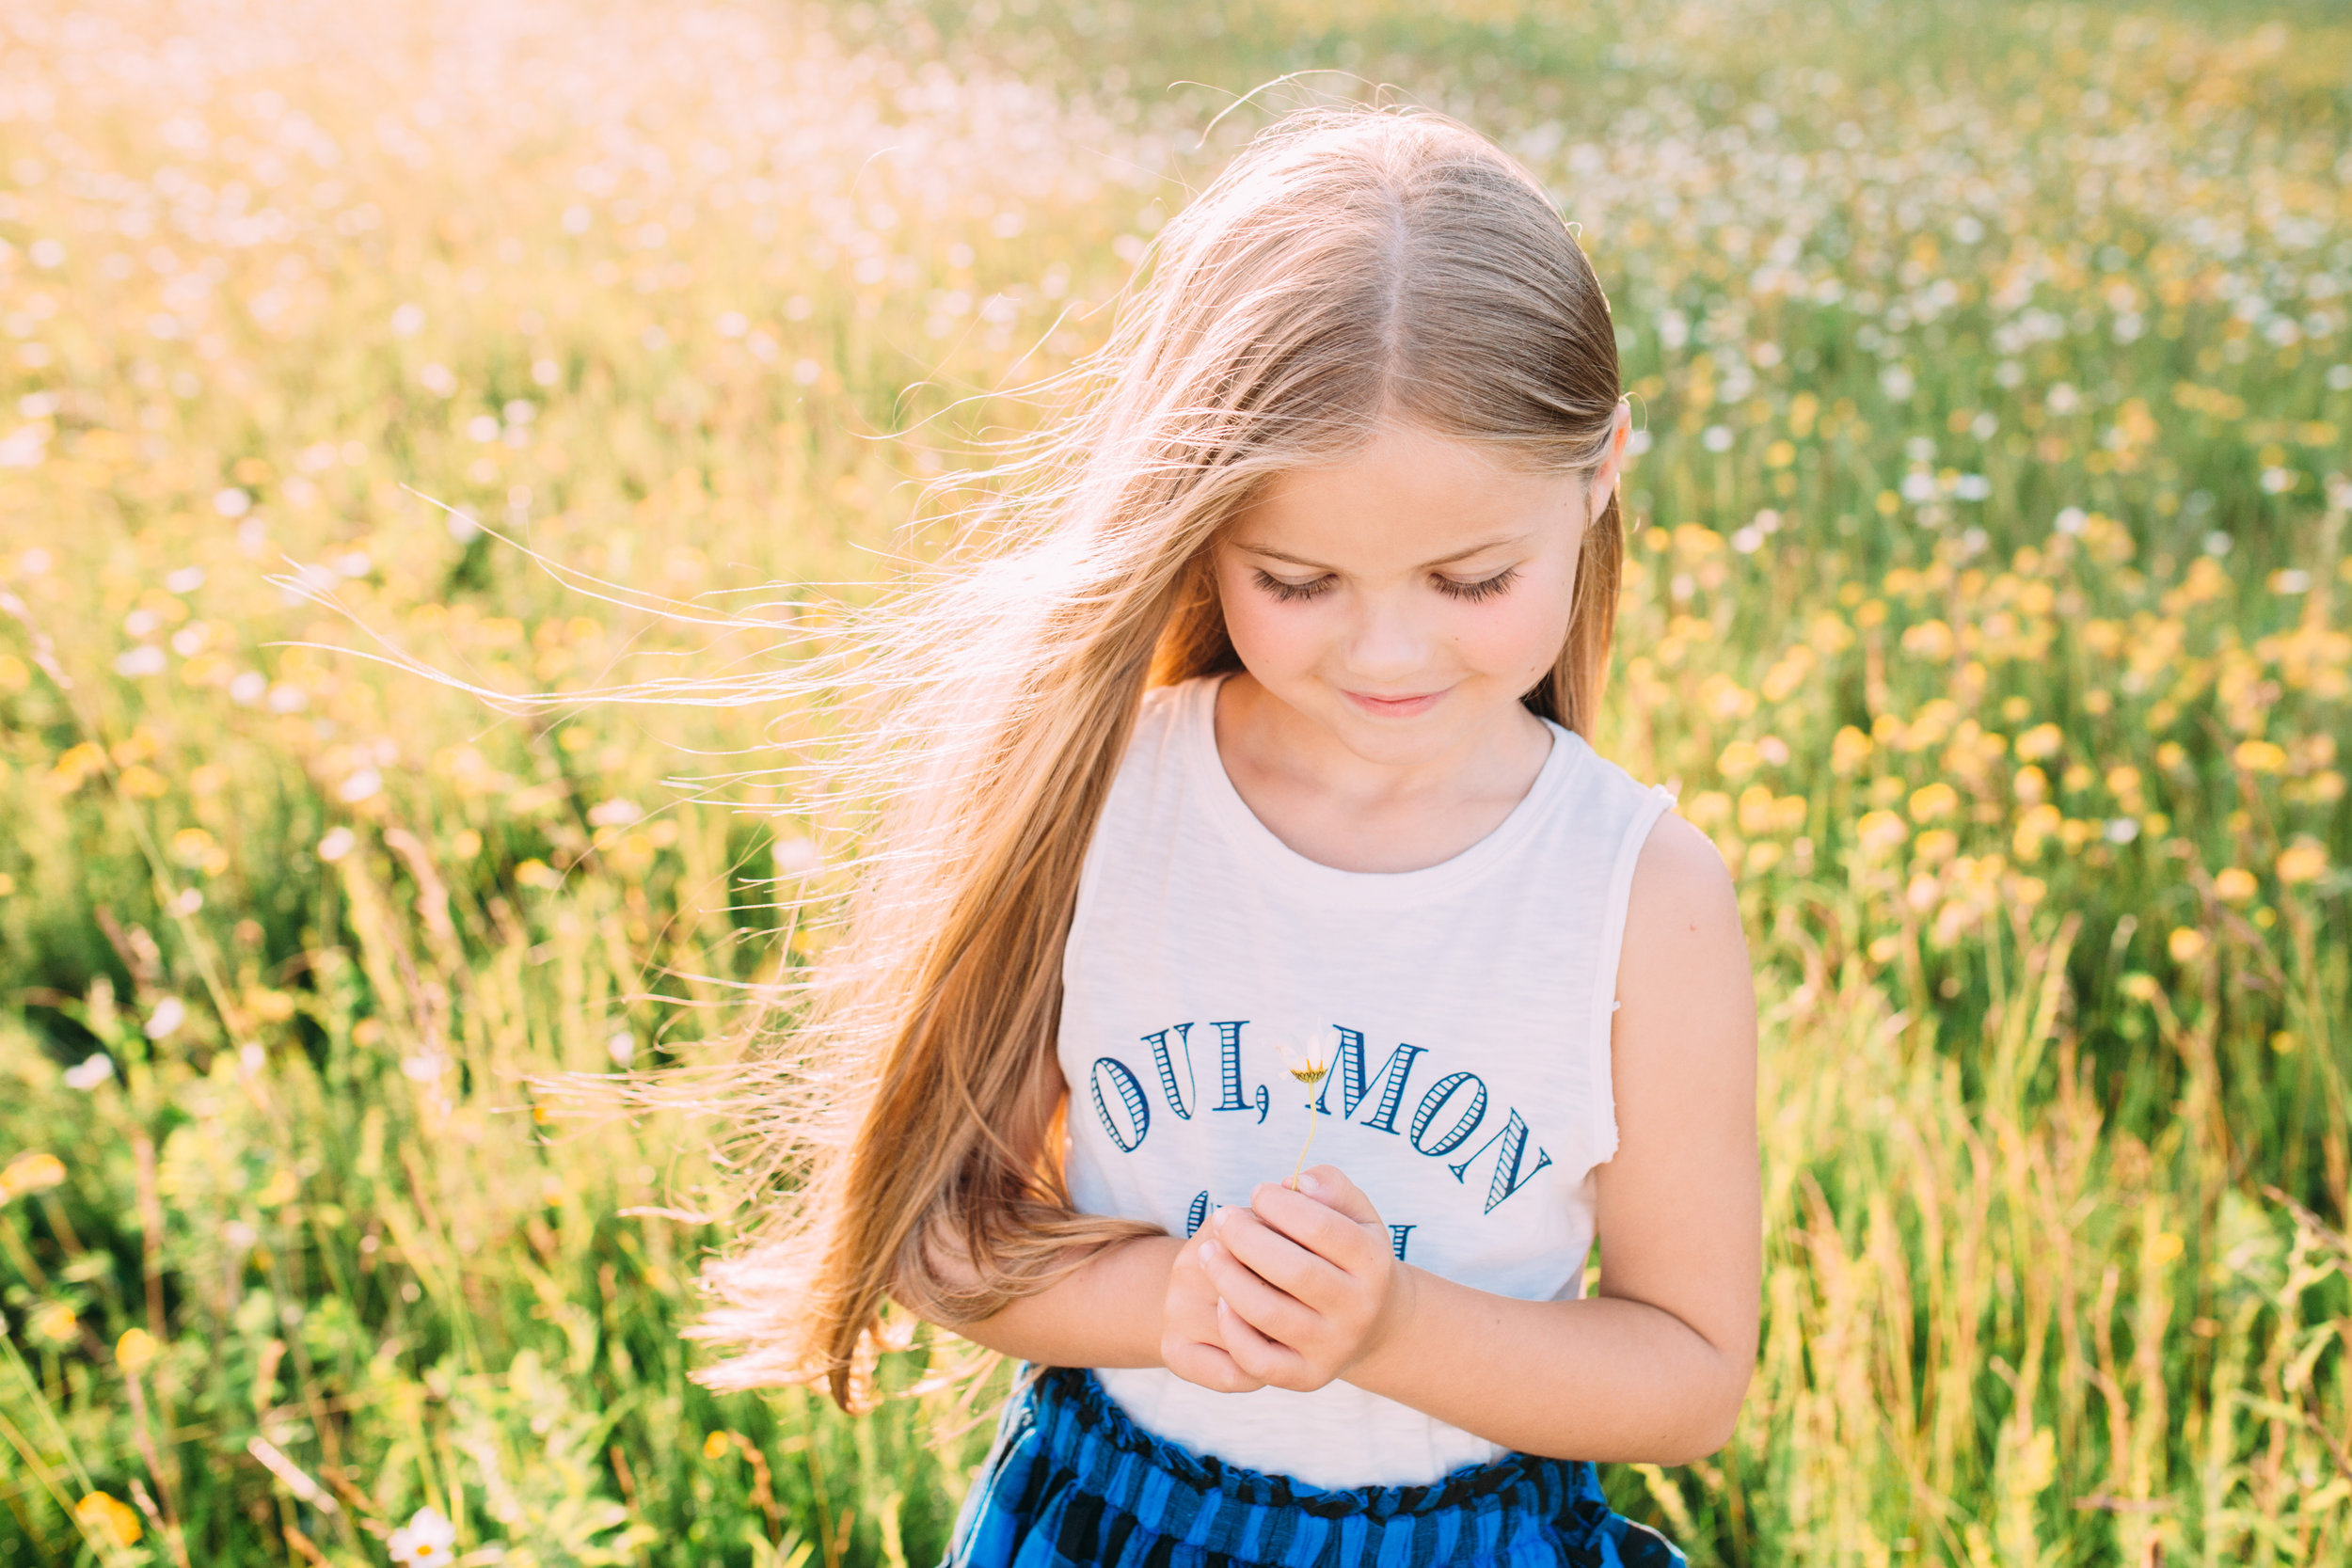 outdoor children photography in London golden hour sunset meadow